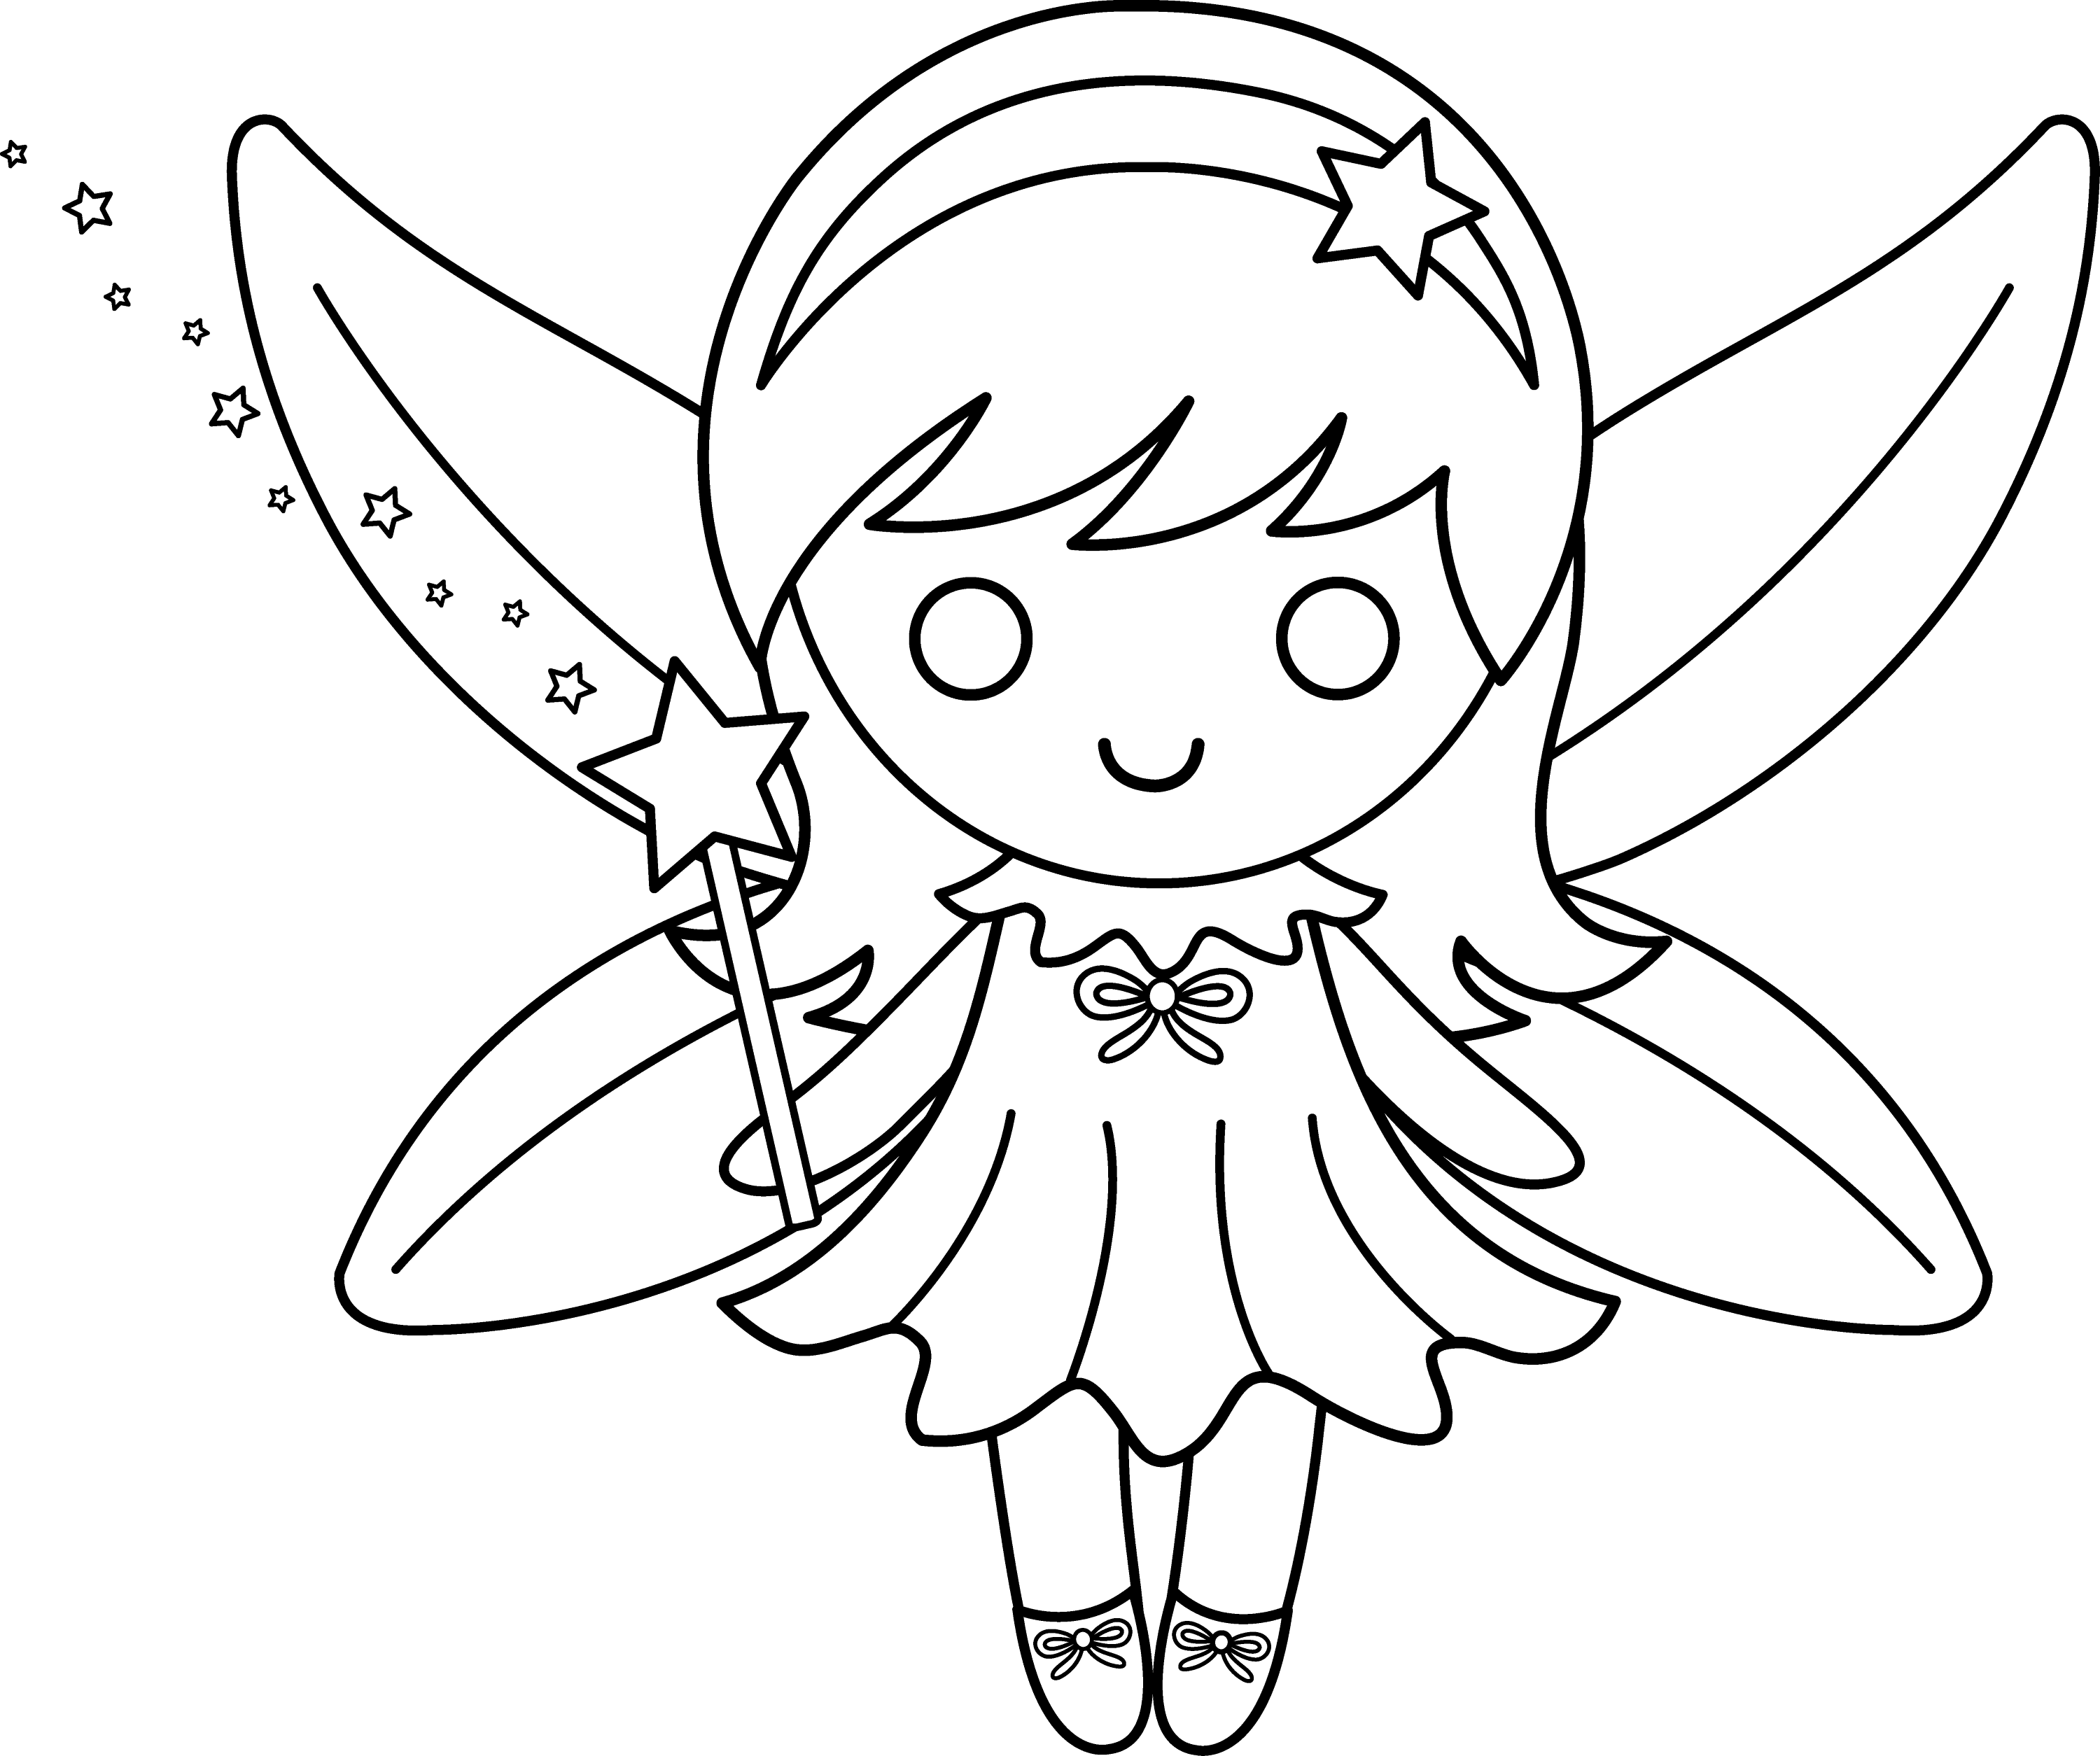 Fairy coloring pages for kids to print - timeless-miracle.com | 5772x6902